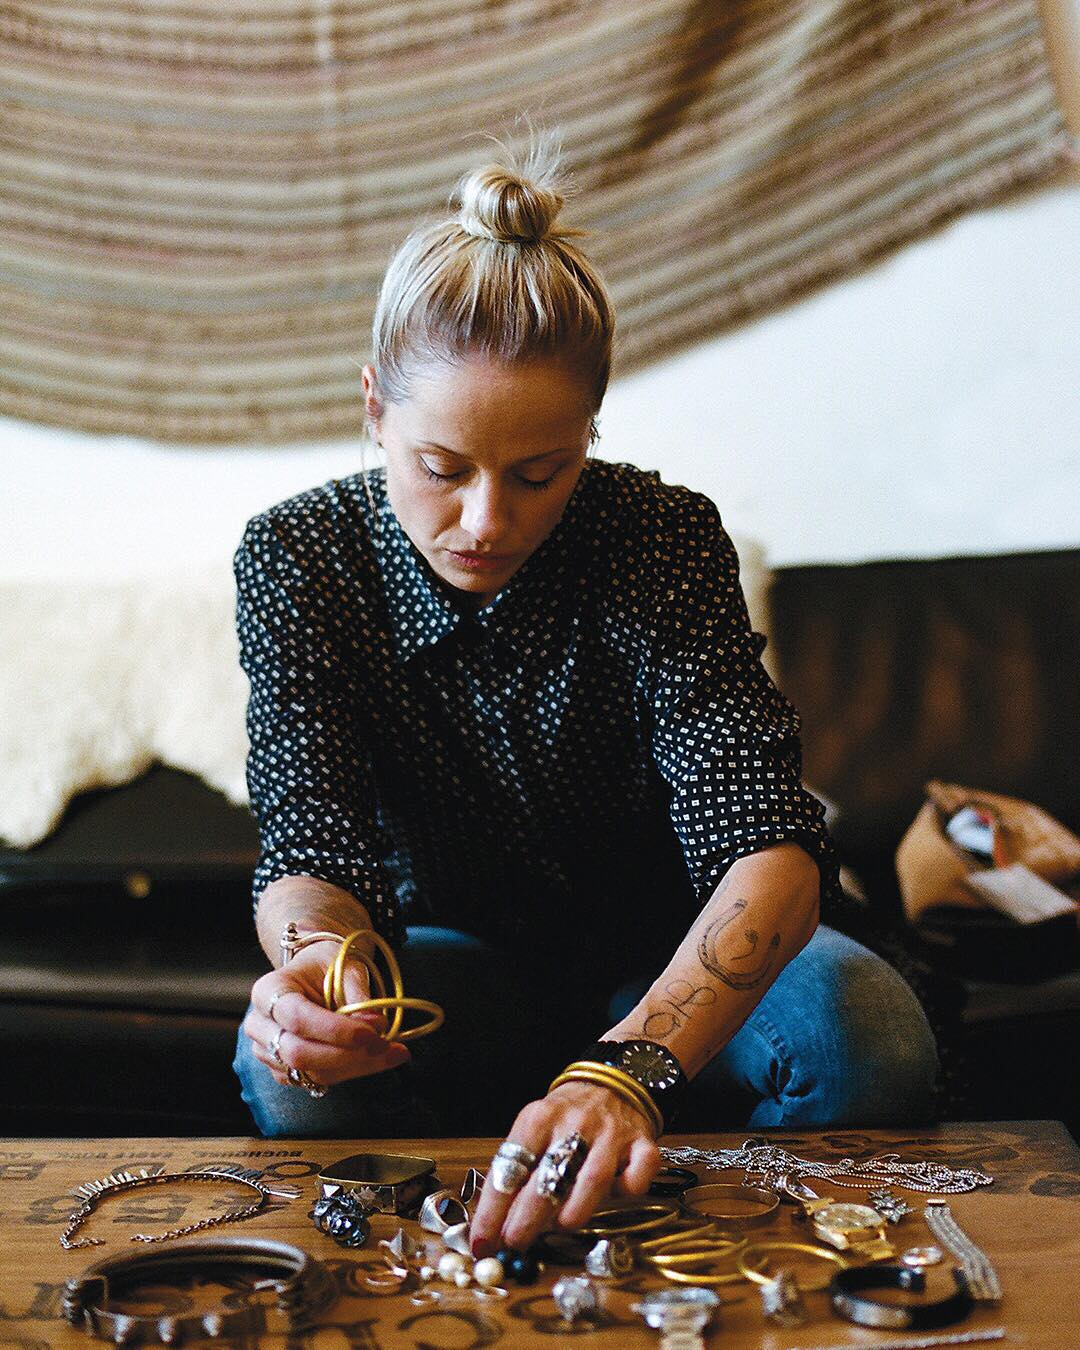 LA-based stylist @Brittbardo has a serious eye for jewelry, vintage and putting it all together. She somehow manages to pile it on—and high—but just to the right amount. Get to know her and the #BulletChrono now on Nixon.com/happenings. #WasteNoTime...